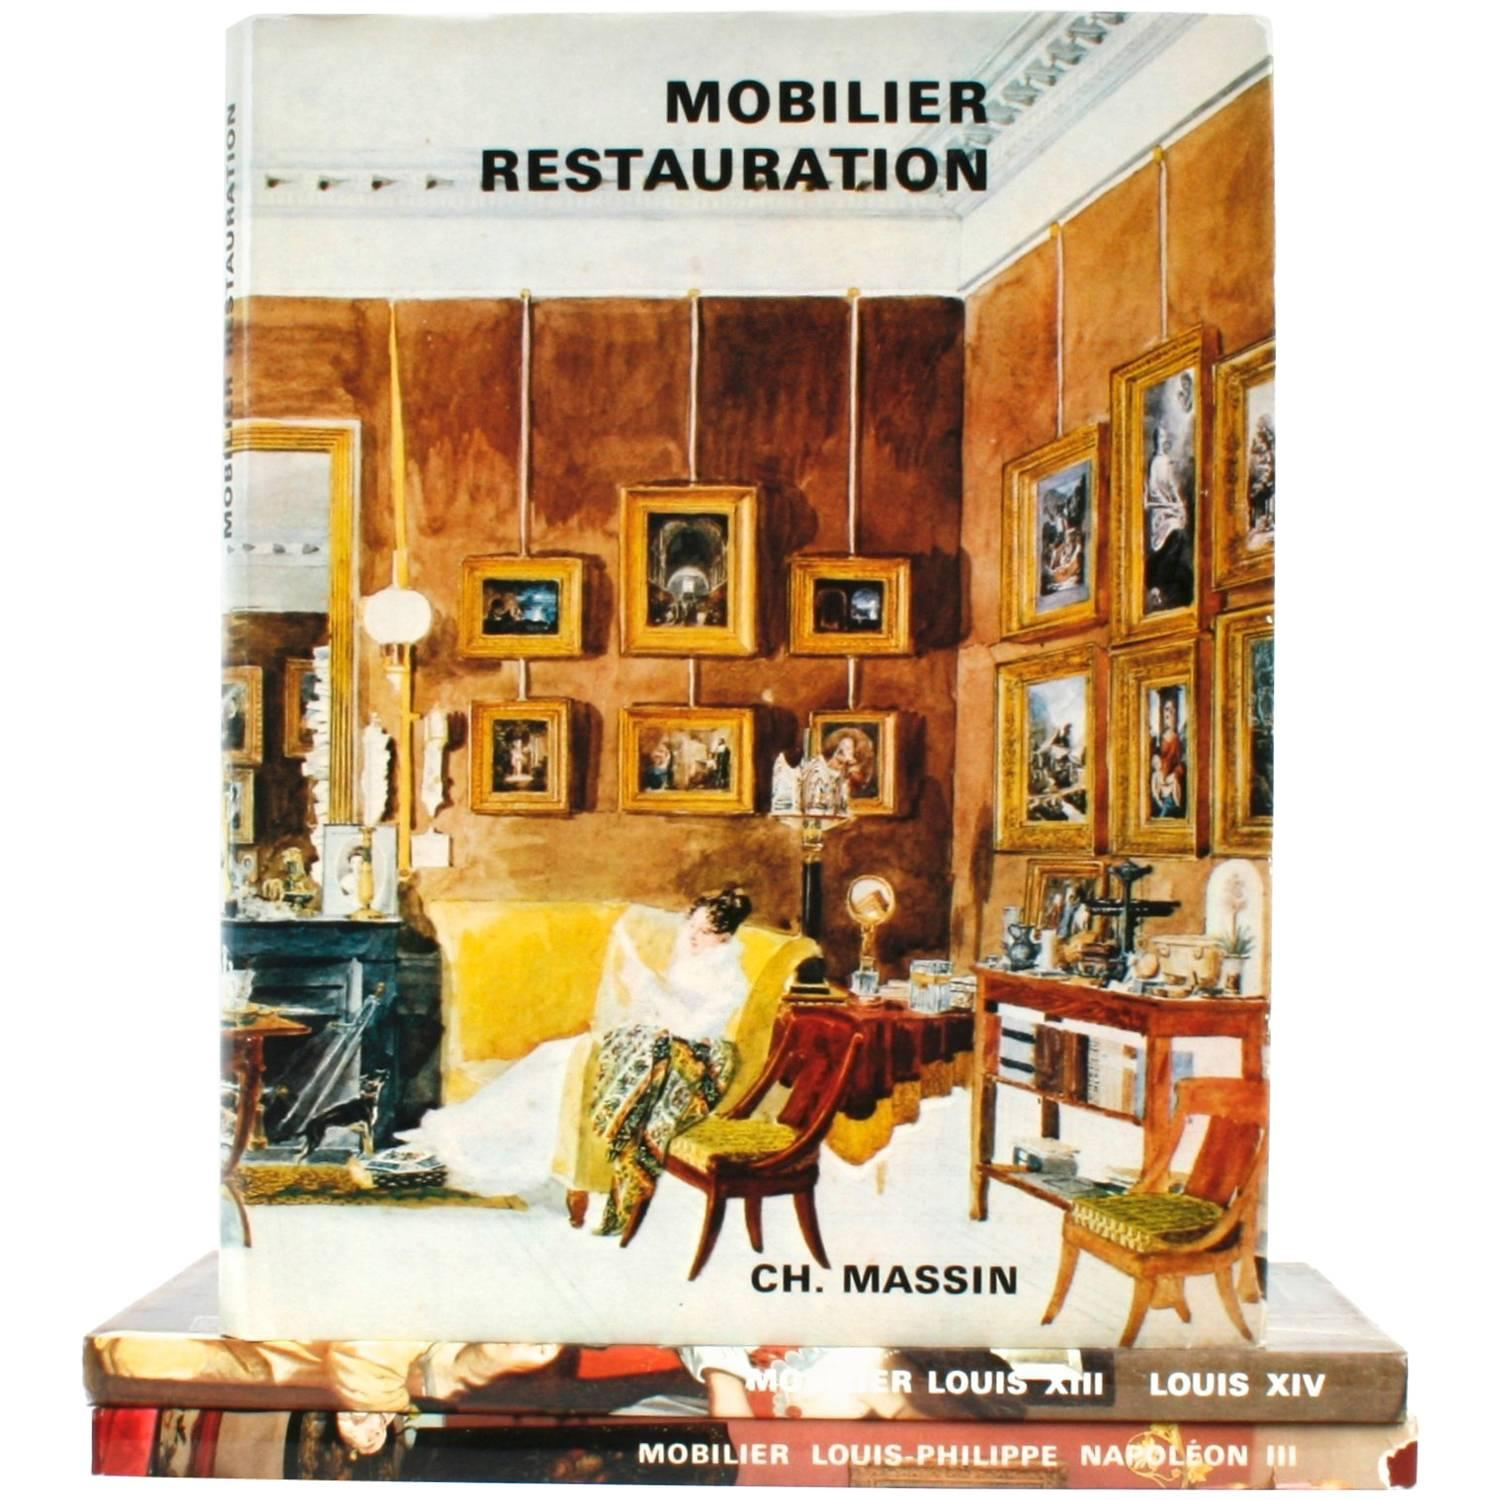 Mobilier Restauration, 1st Ed